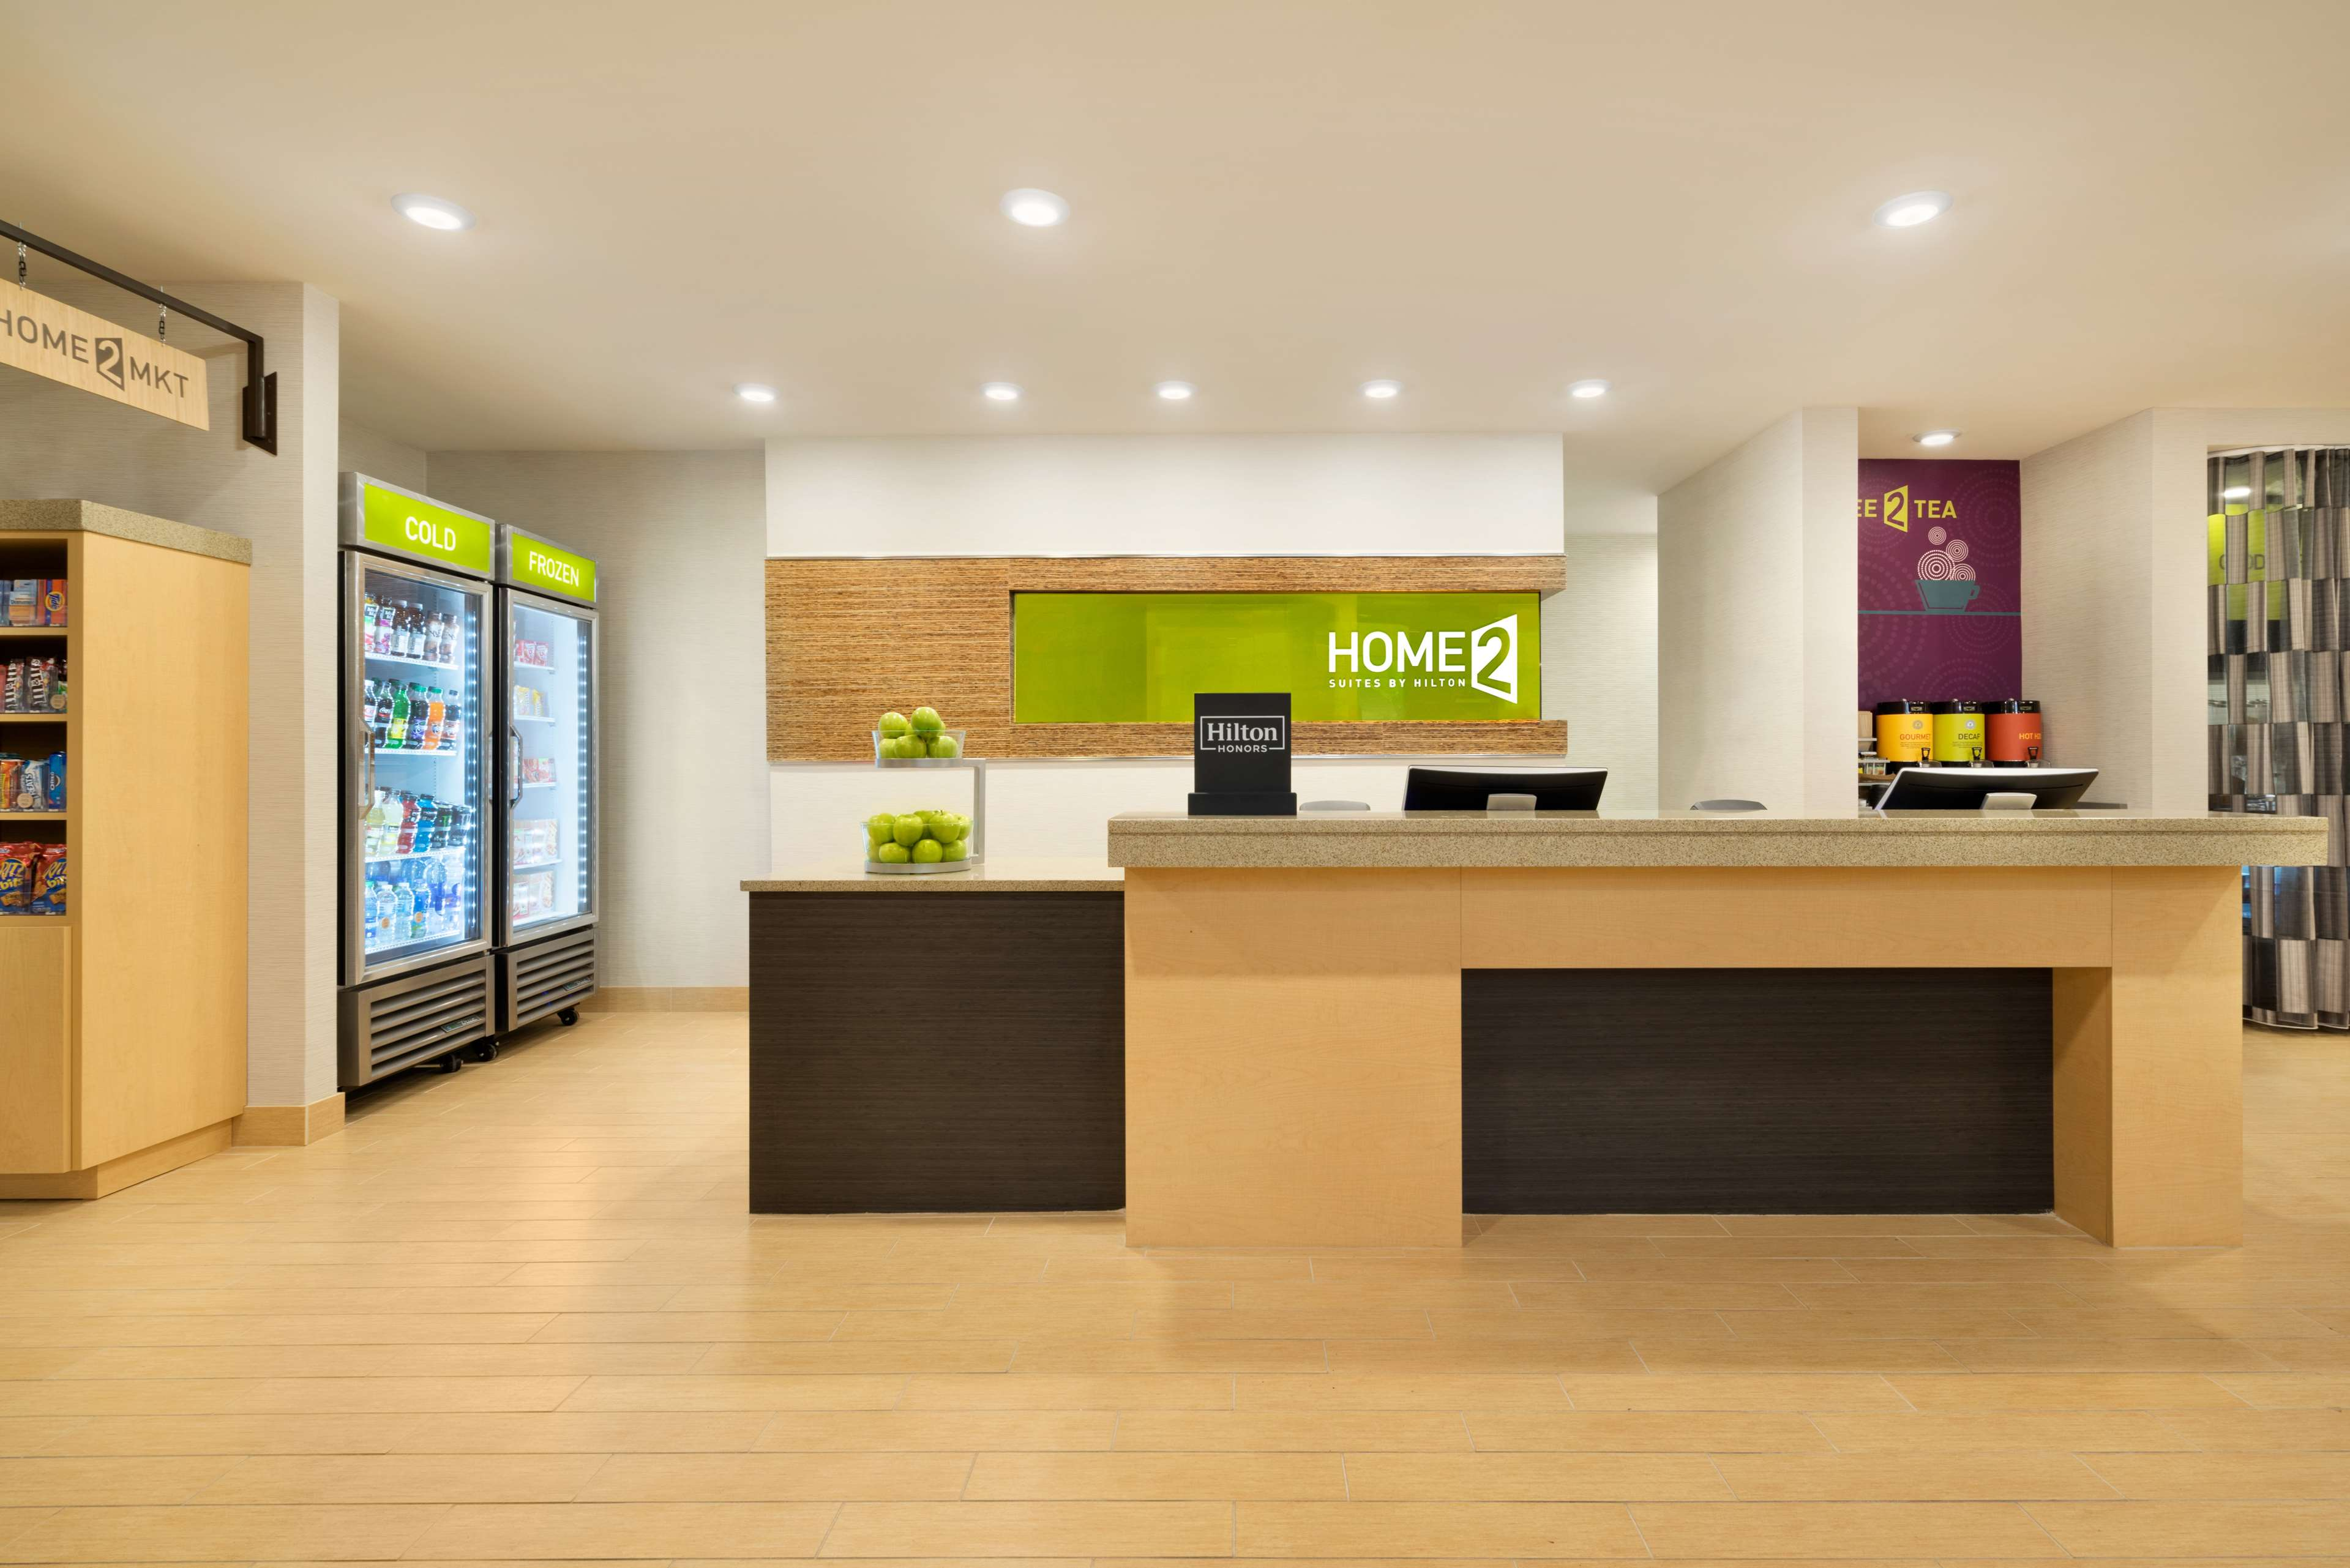 Home2 Suites by Hilton Roanoke image 5